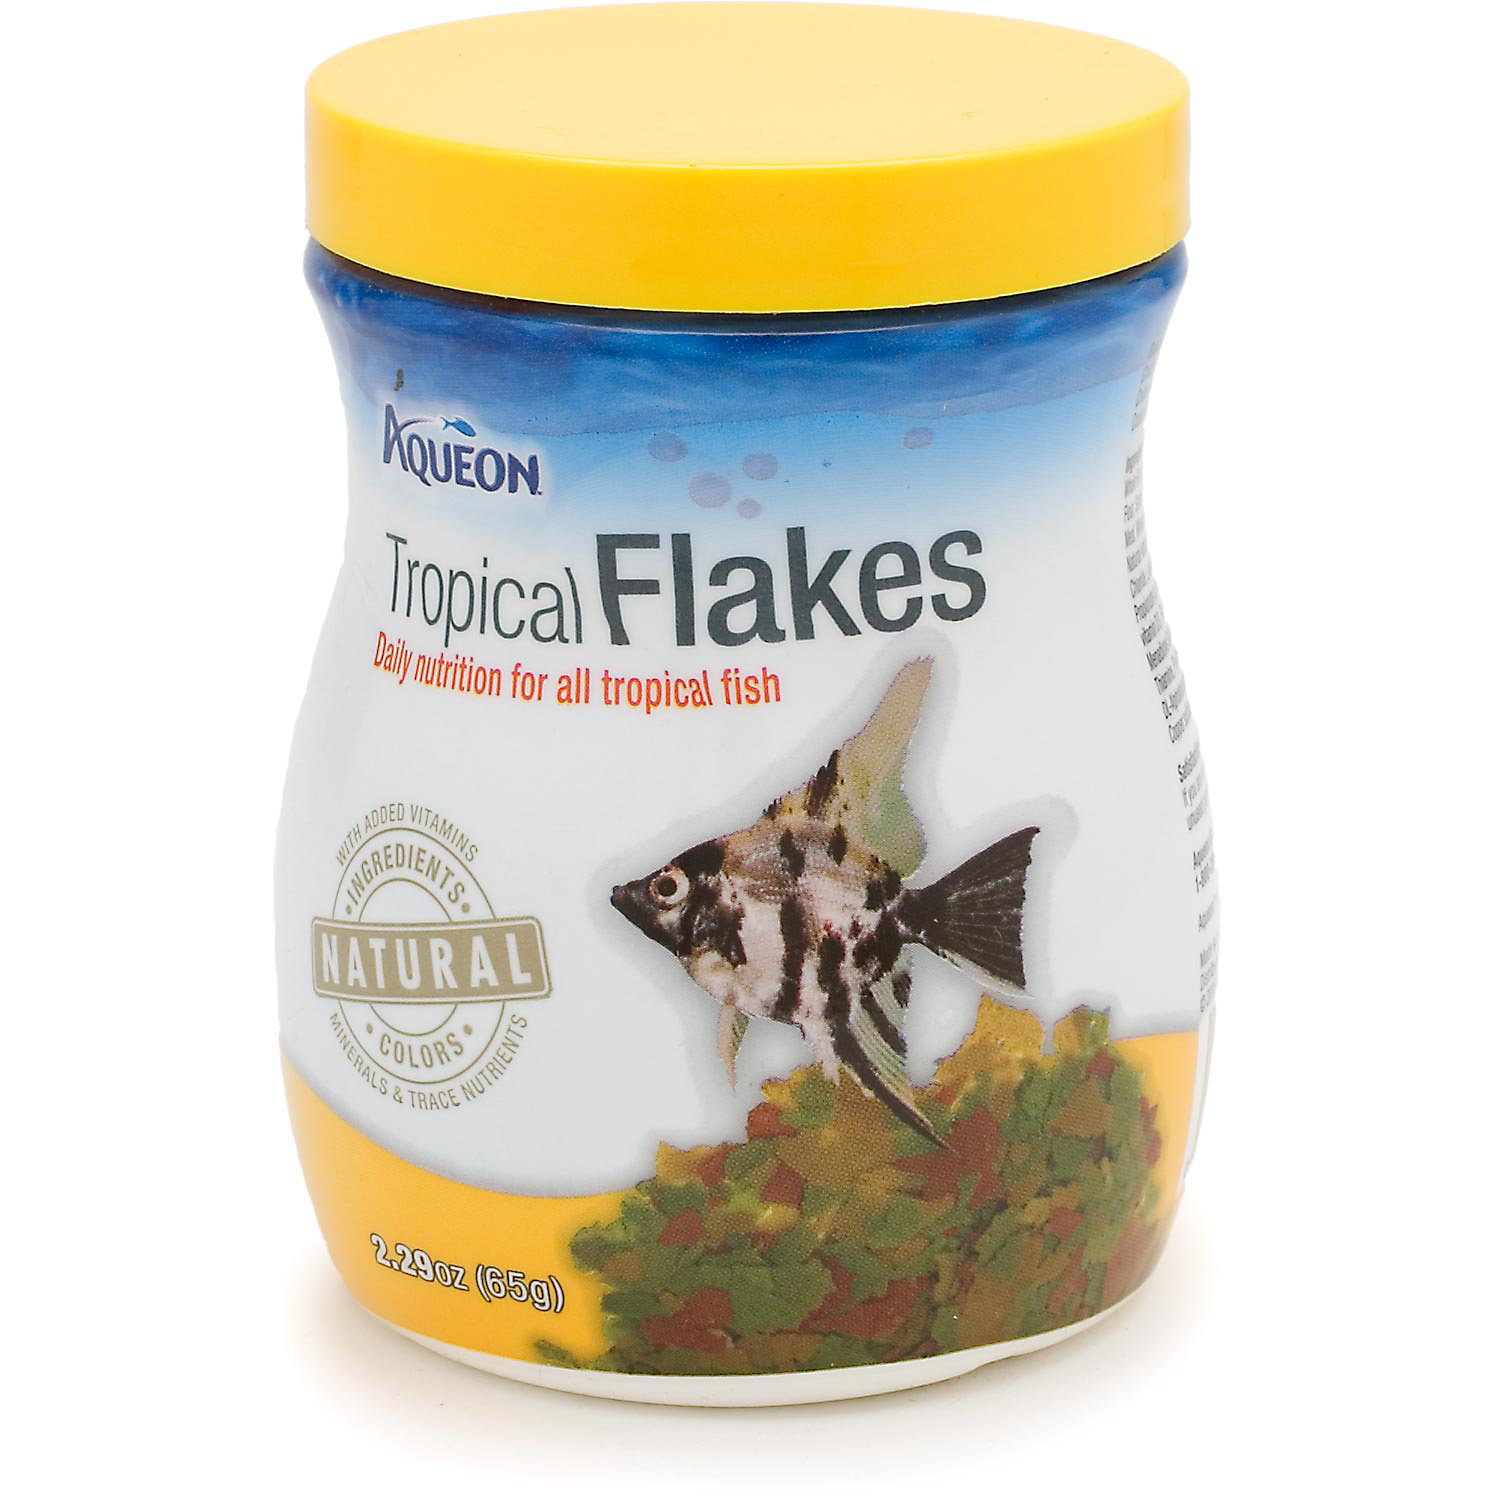 Aqueon Tropical Flakes 2.29 Oz.